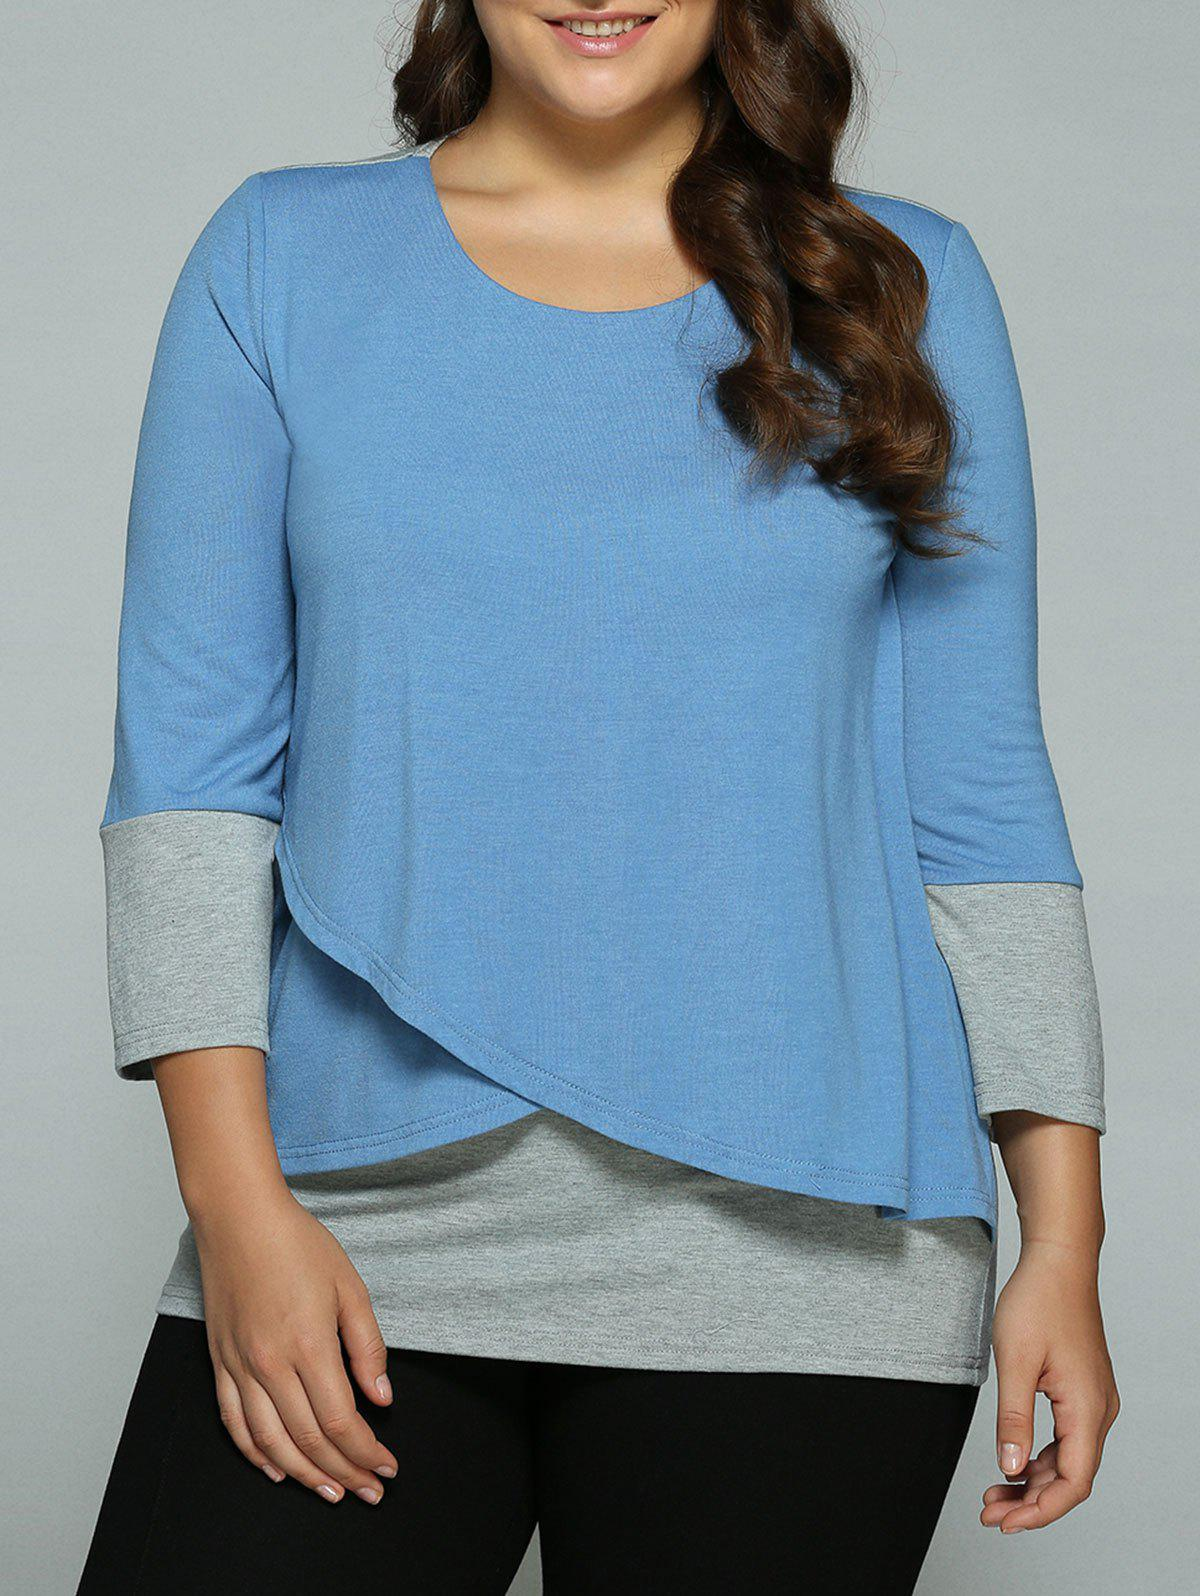 Plus Size Overlay Spliced BlouseWOMEN<br><br>Size: 2XL; Color: BLUE+GRAY; Material: Polyester,Spandex; Shirt Length: Long; Sleeve Length: Three Quarter; Collar: Scoop Neck; Style: Casual; Season: Fall,Spring,Summer; Pattern Type: Patchwork; Weight: 0.400kg; Package Contents: 1 x Blouse;